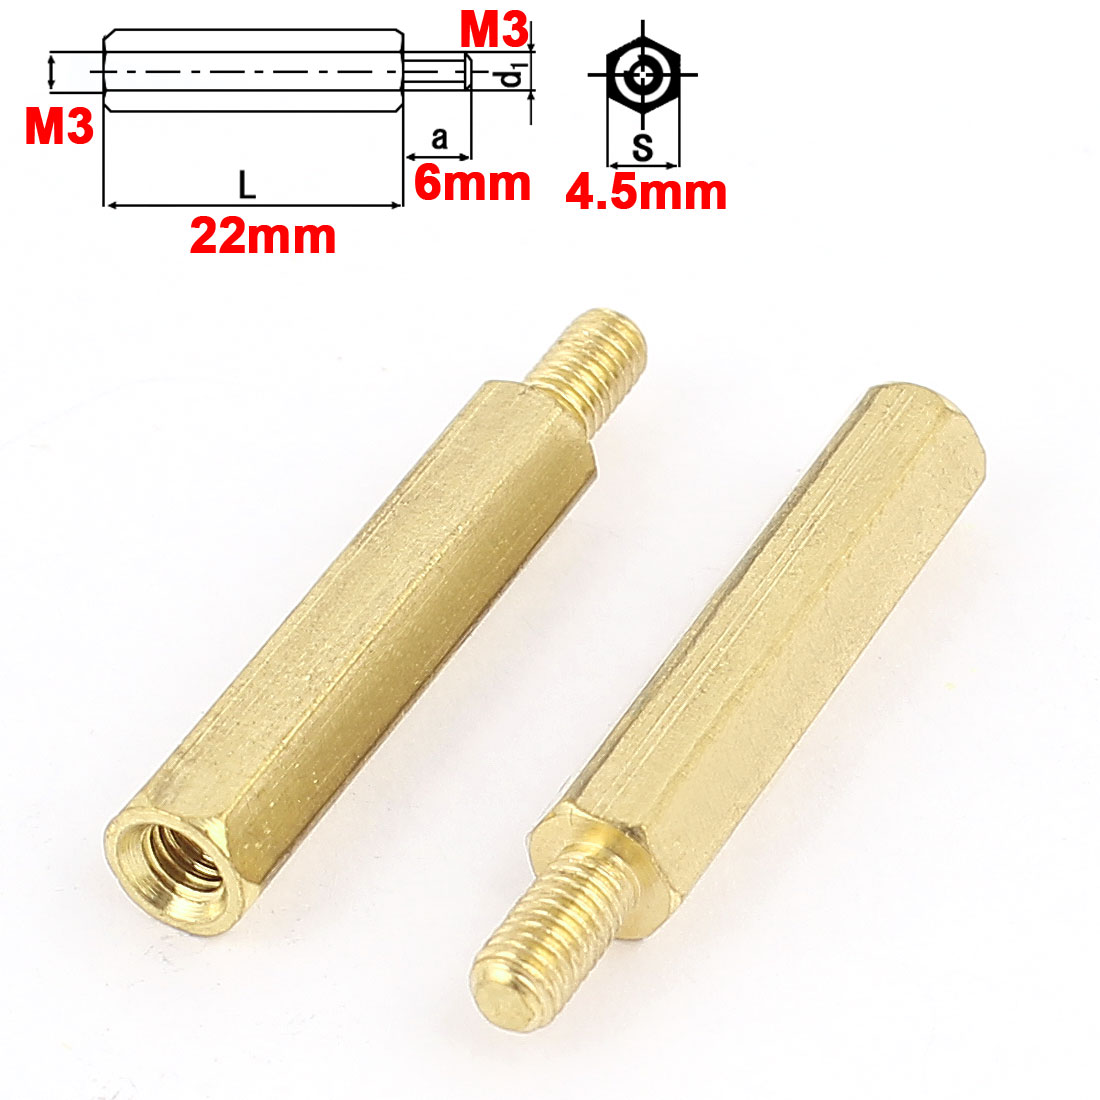 uxcell 100Pcs <font><b>M3</b></font> <font><b>22mm</b></font>+6mm Male Female Ordinary Brass Hex Standoff Spacer Screw Pillar image